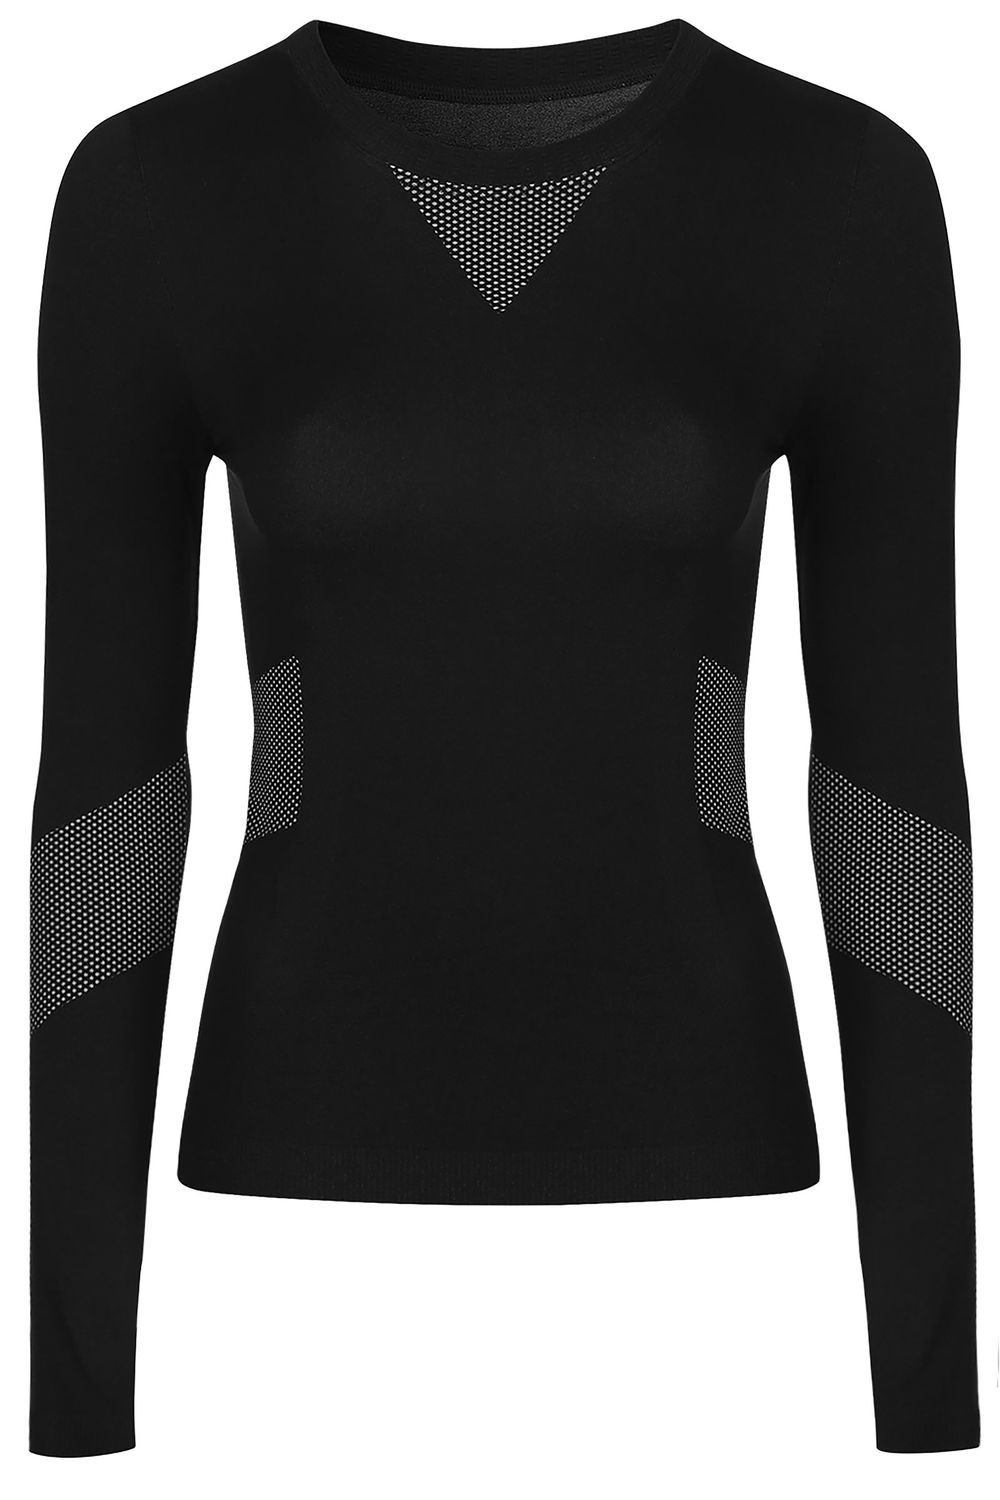 8_Beyonce_Ivy_Park_Seamless_Long_Sleeve_Black.jpg